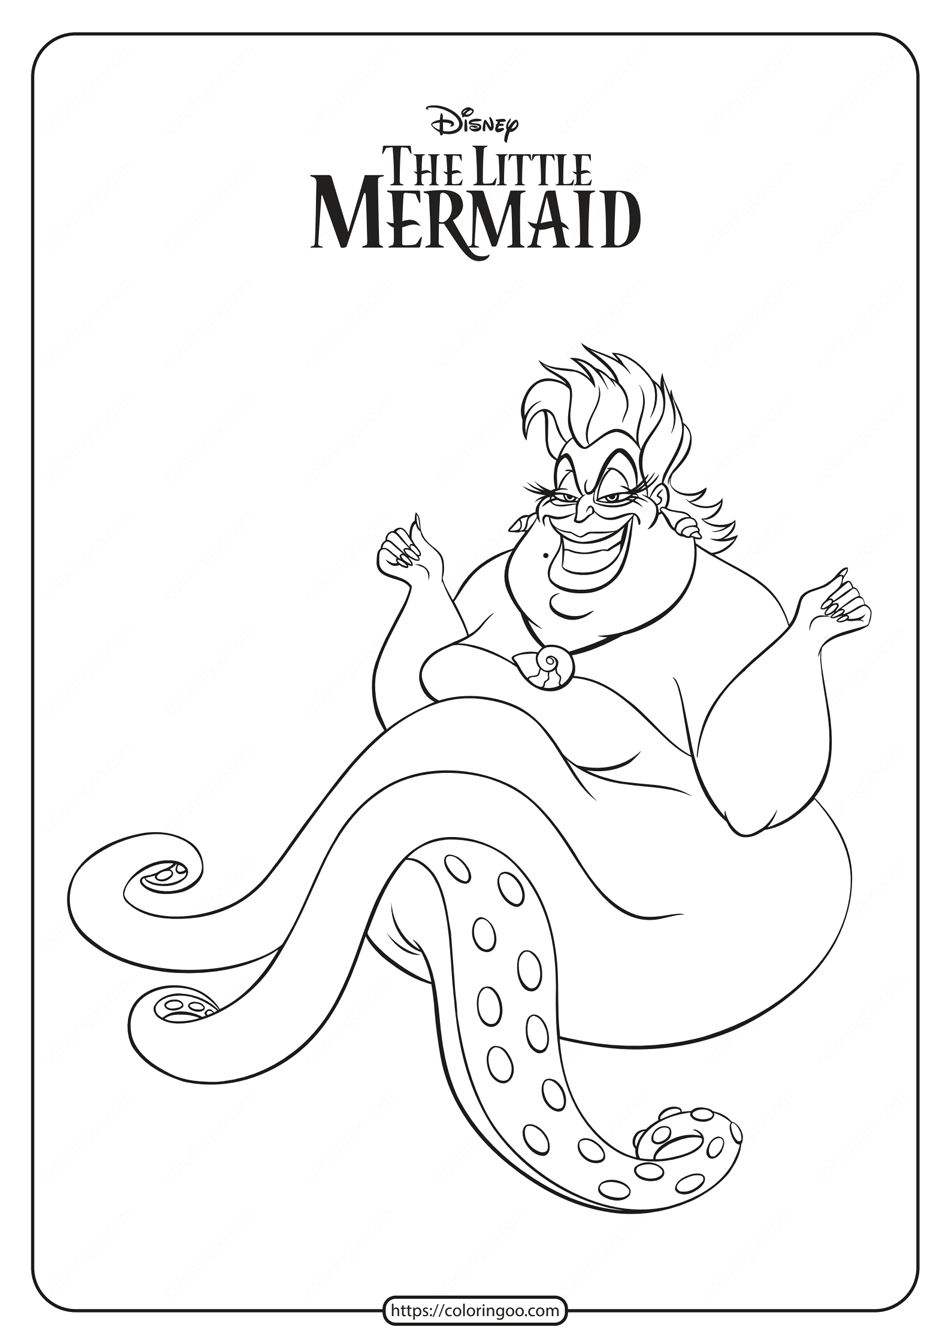 Free Printable Ursula Coloring Pages 1 Disney Princess Coloring Pages Mermaid Coloring Pages My Little Pony Coloring